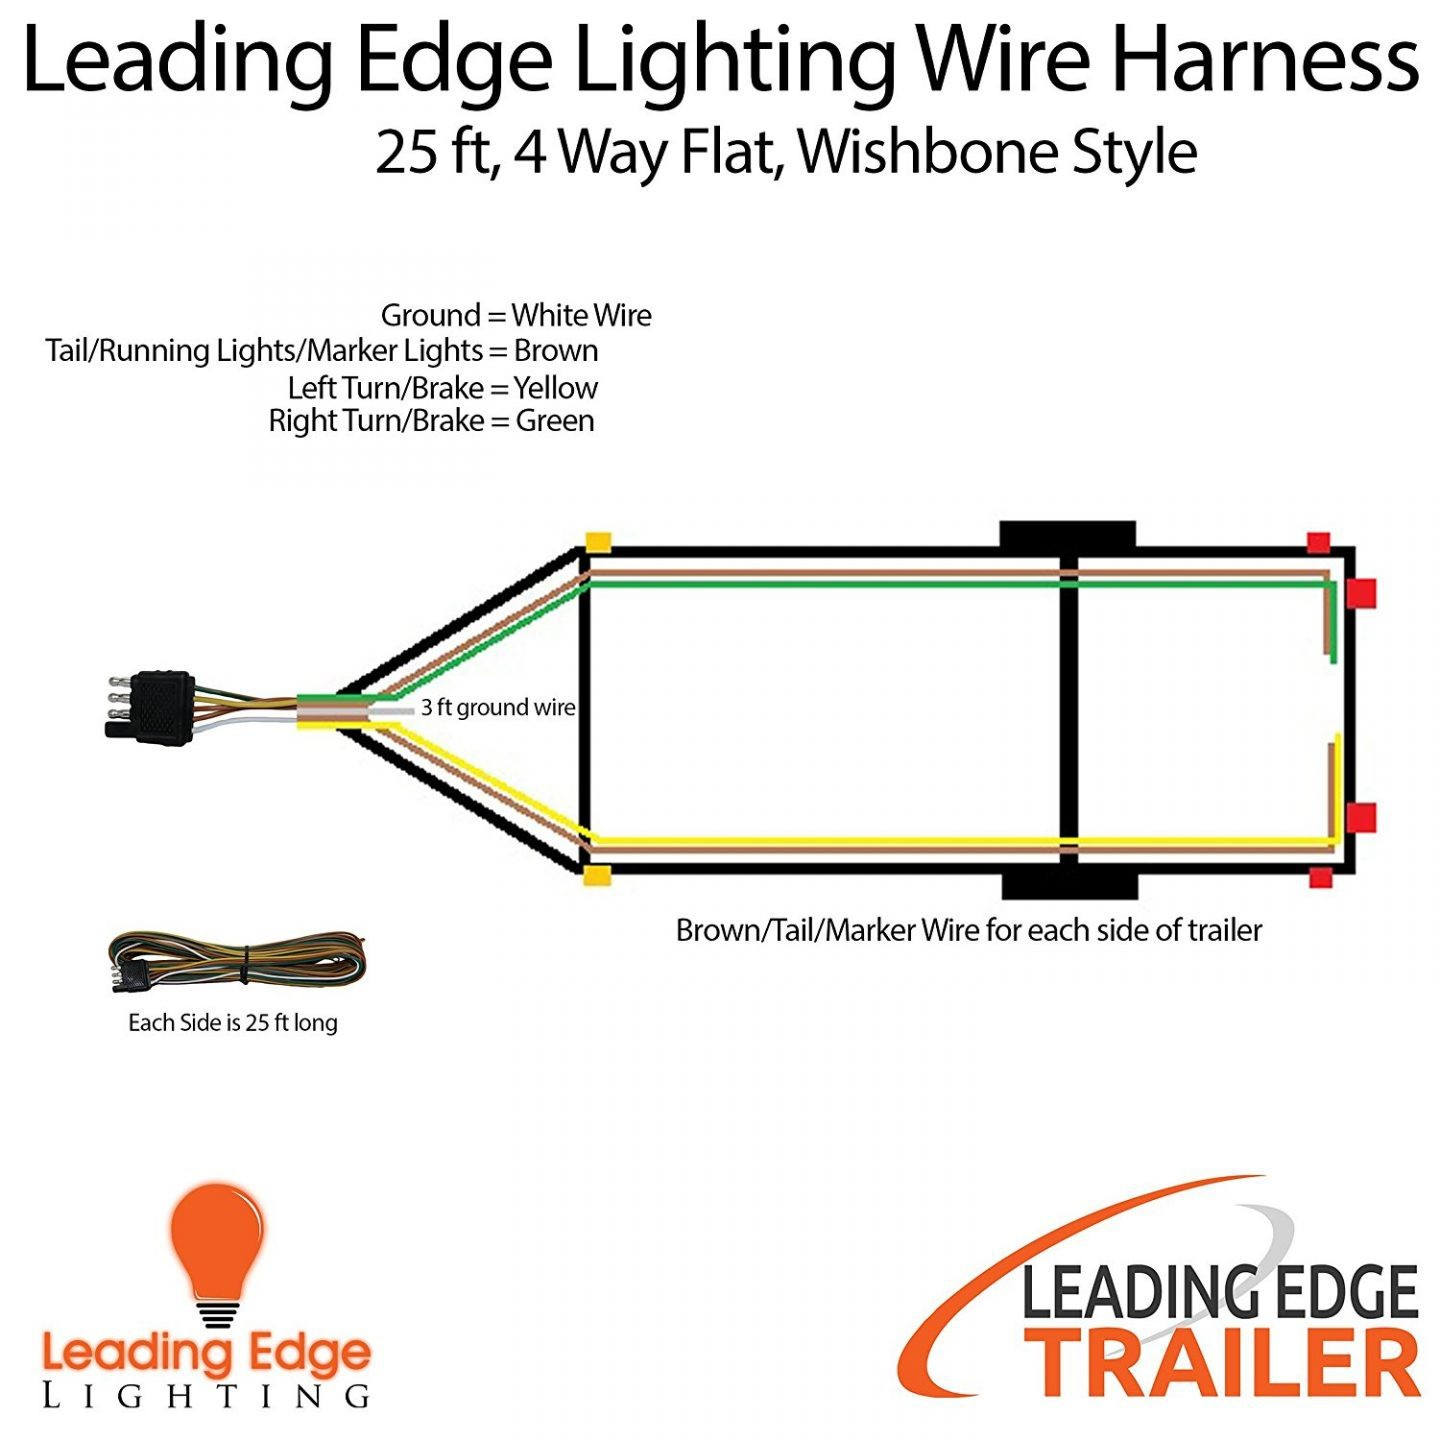 Horse Trailer Wiring Diagram Awesome Pin Horse Trailer Wiringram Way Square Wiring Diagram 6 Round Plug